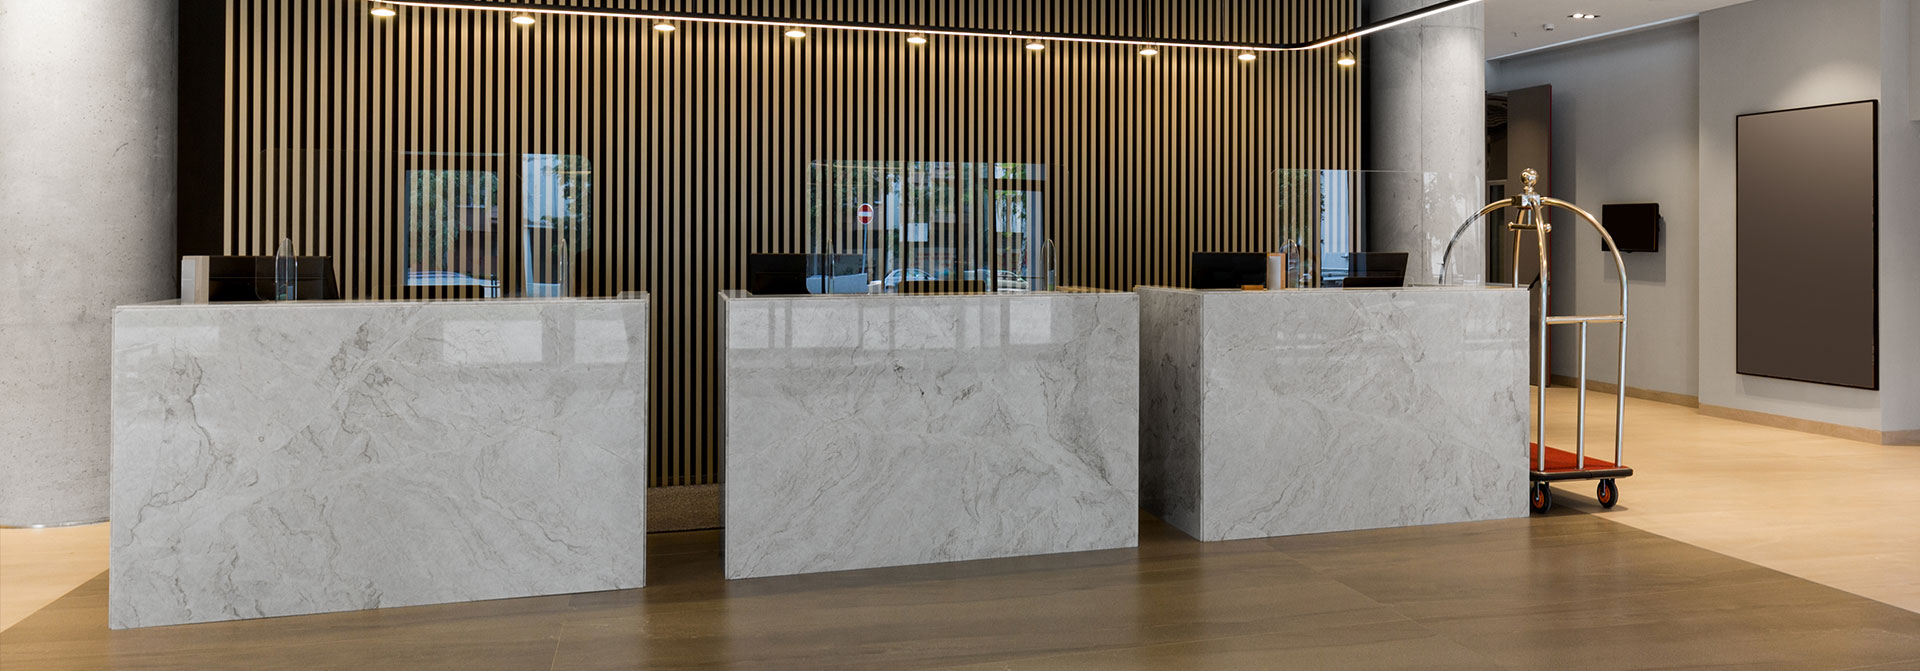 reception space sneeze guards as a safety measure